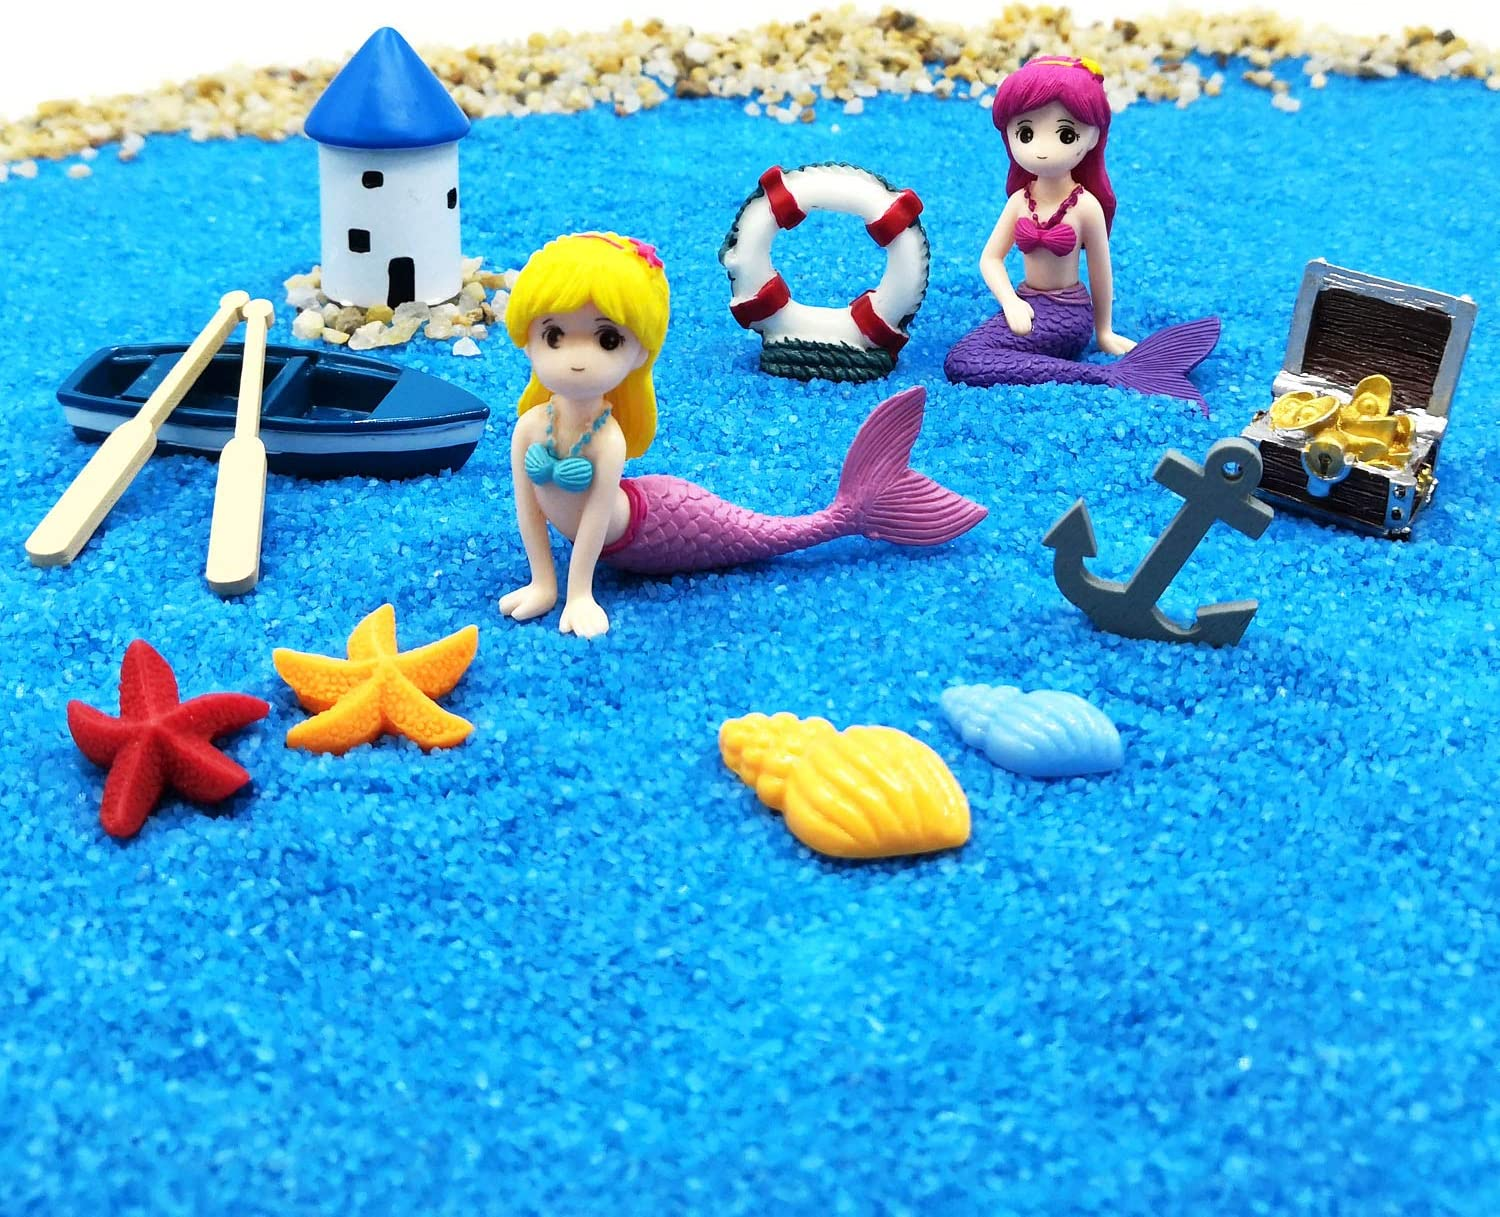 EMiEN Summer Beach Theme Mermaid Figurines Miniature Fairy Garden Ornament Kits for DIY Dollhouse Decoration, Micro Ocean Scene Fairy Garden Accessories, Blue Sand, Castle, Cute Mermaid,Treasure,Boat